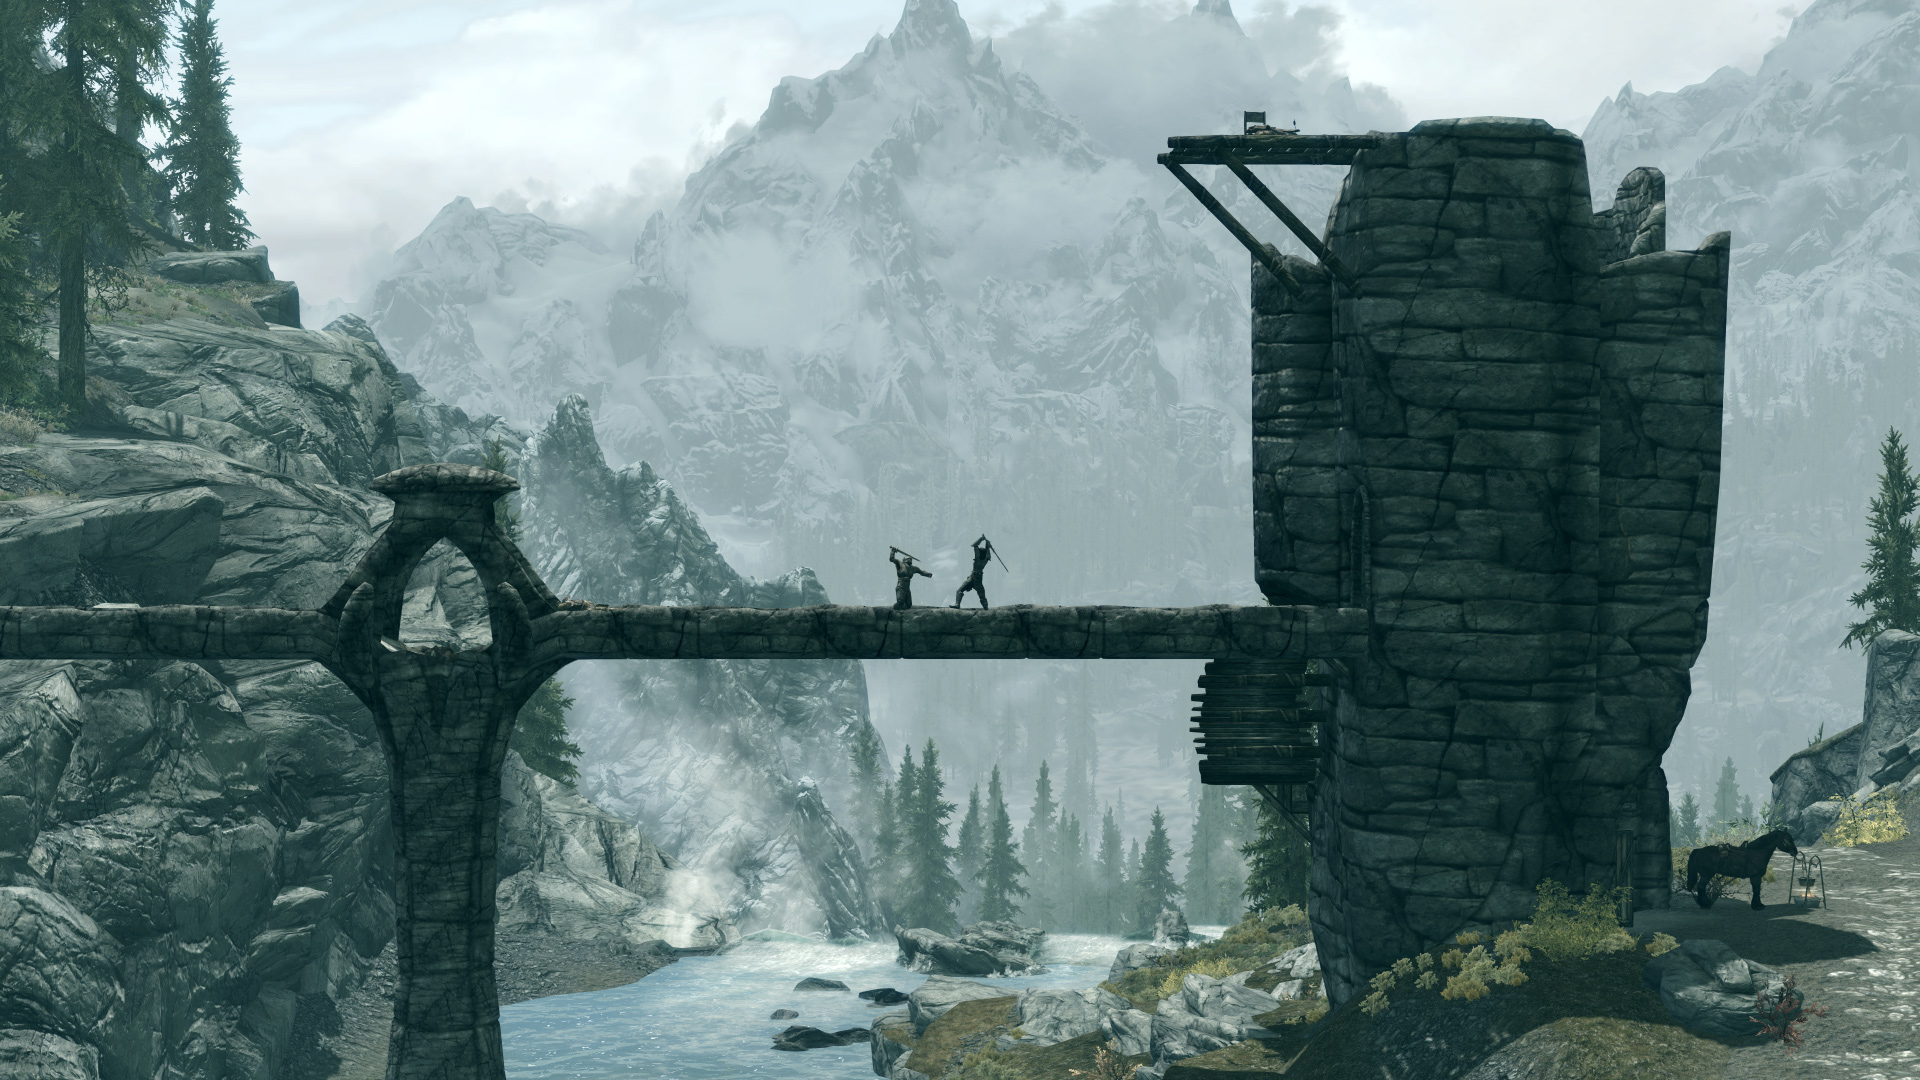 Skyrim Hd Wallpaper 05